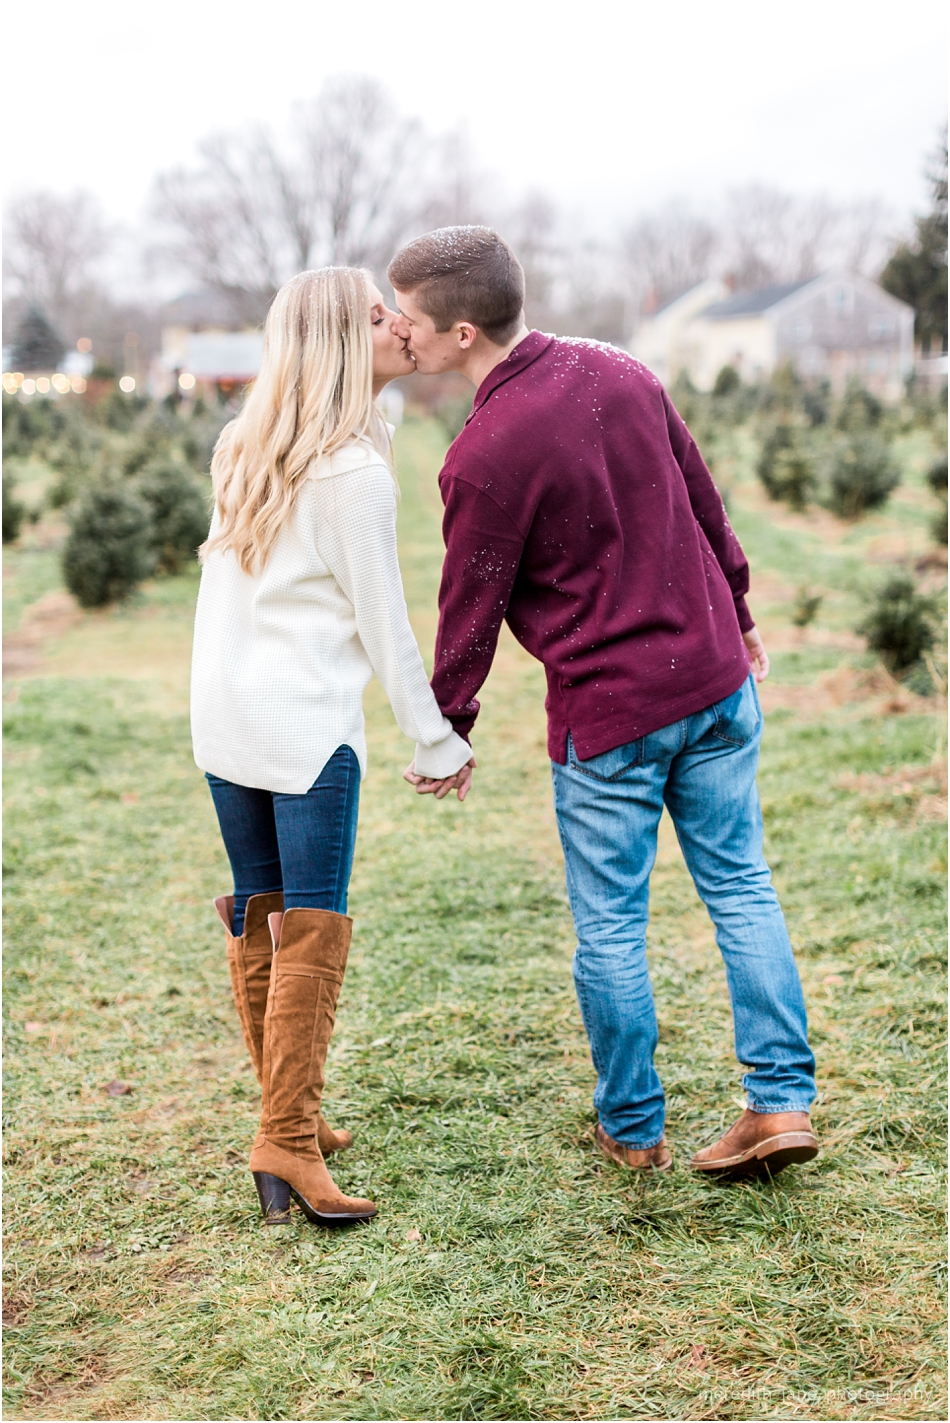 mistletoe_holiday_tree_farm_christmas_boston_massachusetts_engagement_fall_cape_cod_wedding_photographer_Meredith_Jane_Photography_photo_1012.jpg